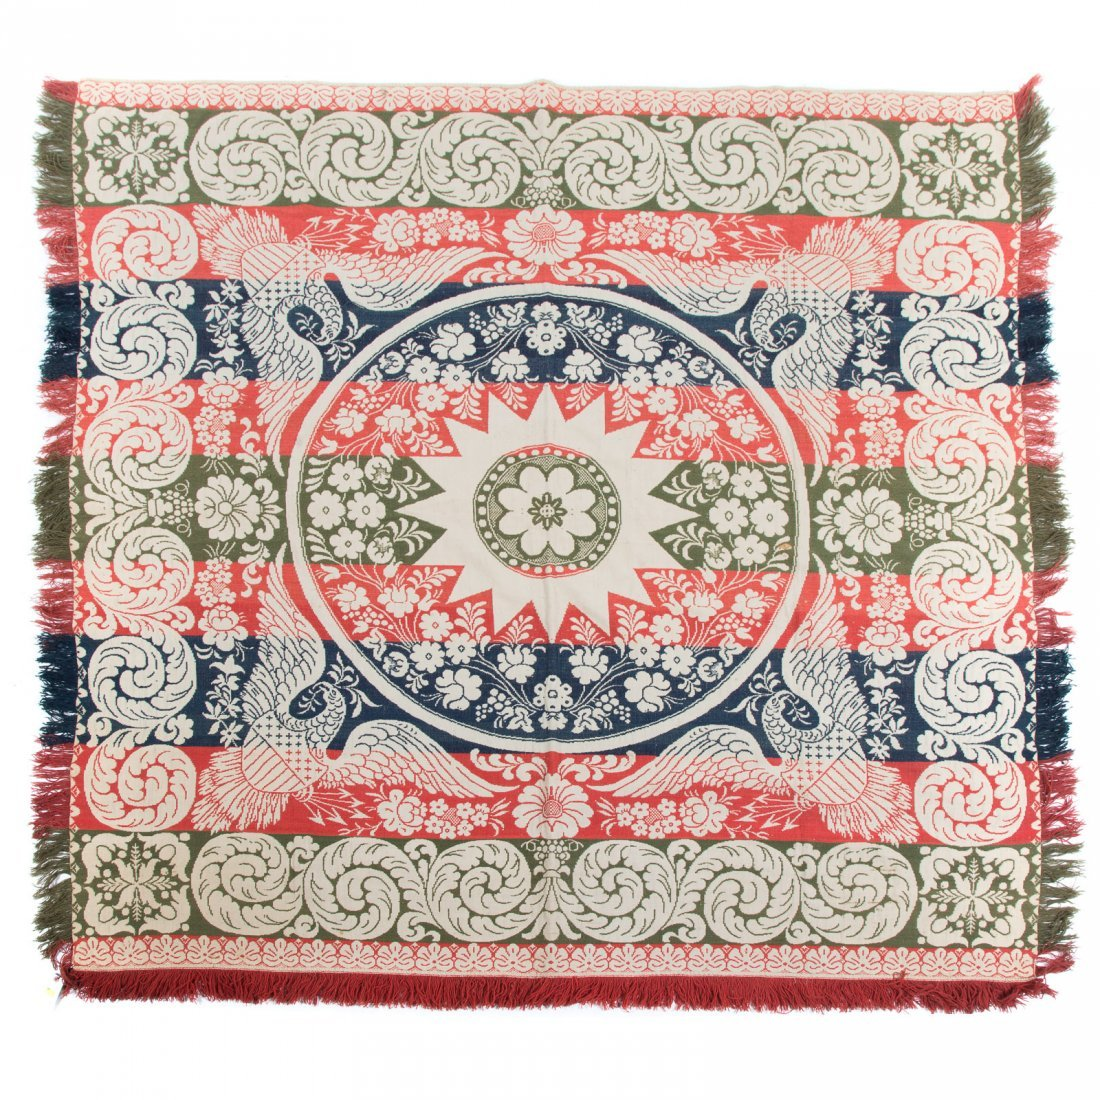 American loom woven jacquard coverlet